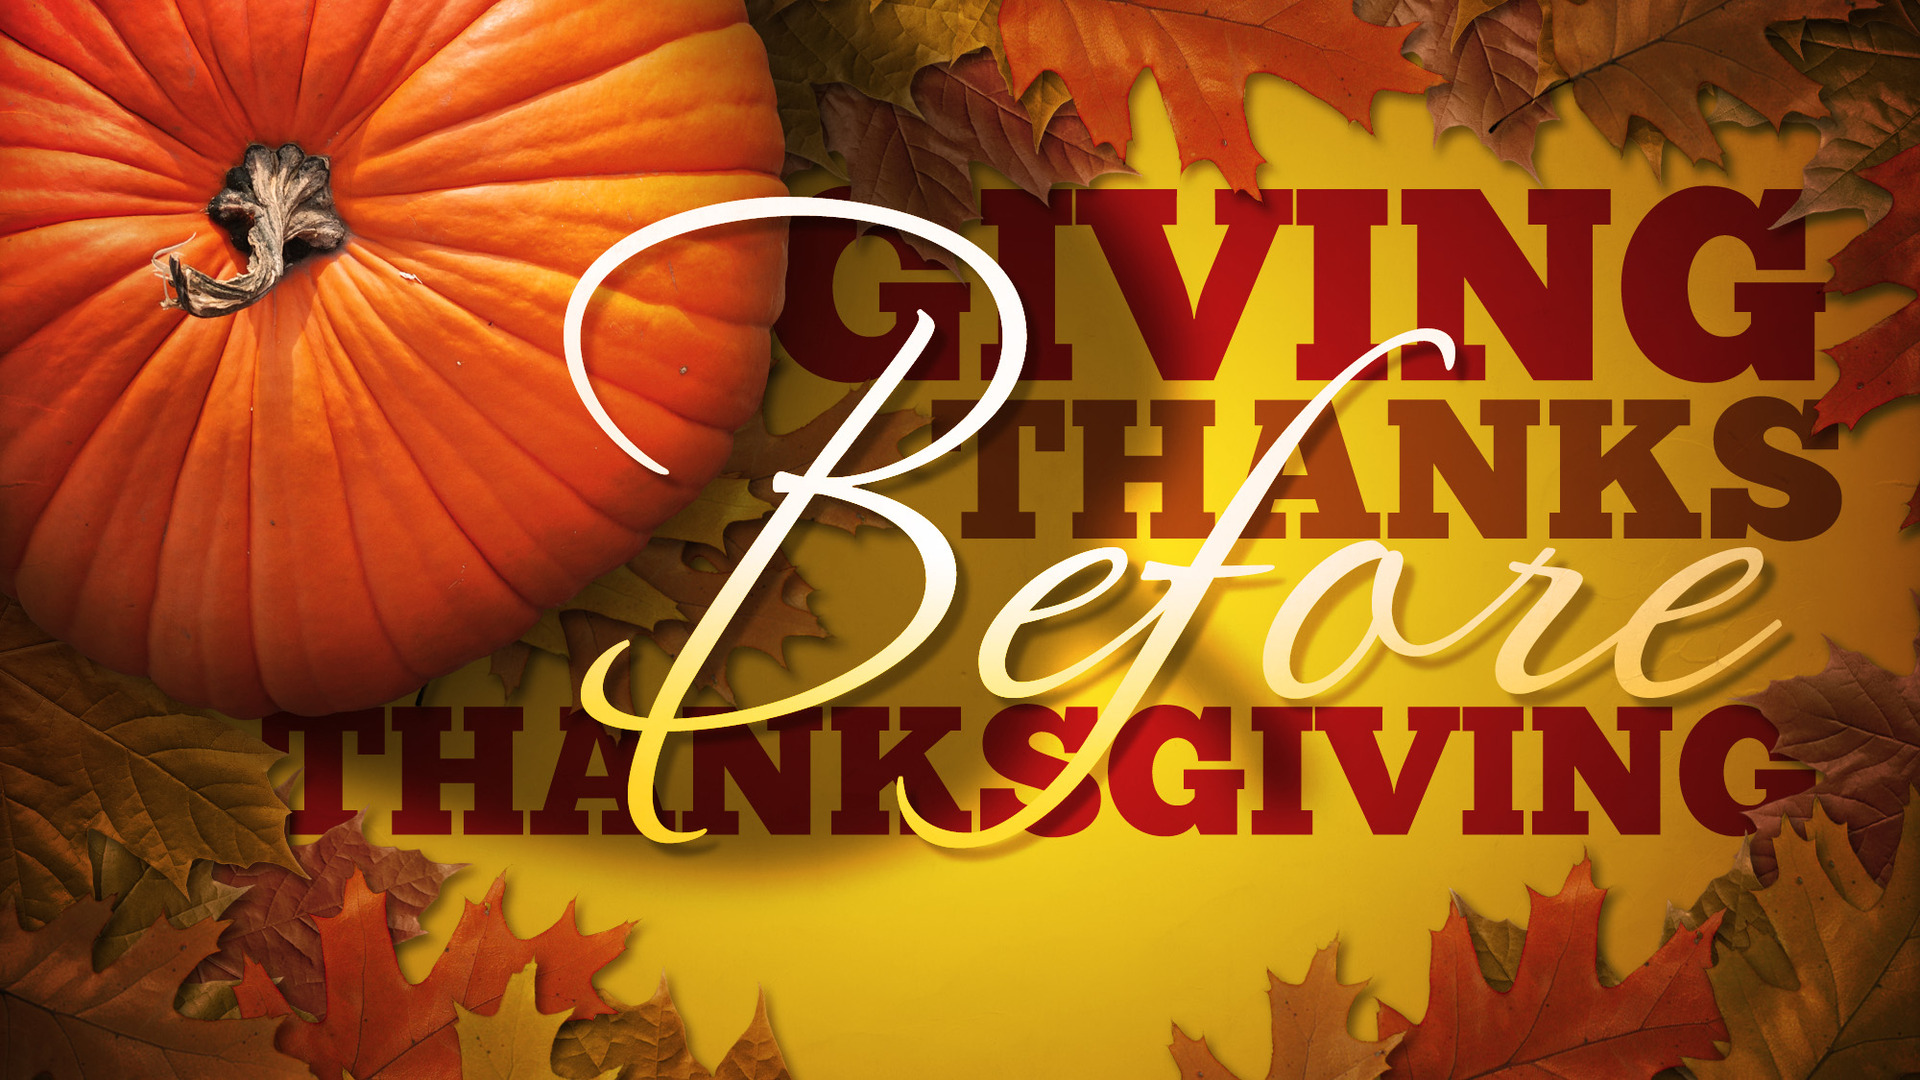 giving_thanks_before_thanksgiving-title-2-Wide 16x9 image